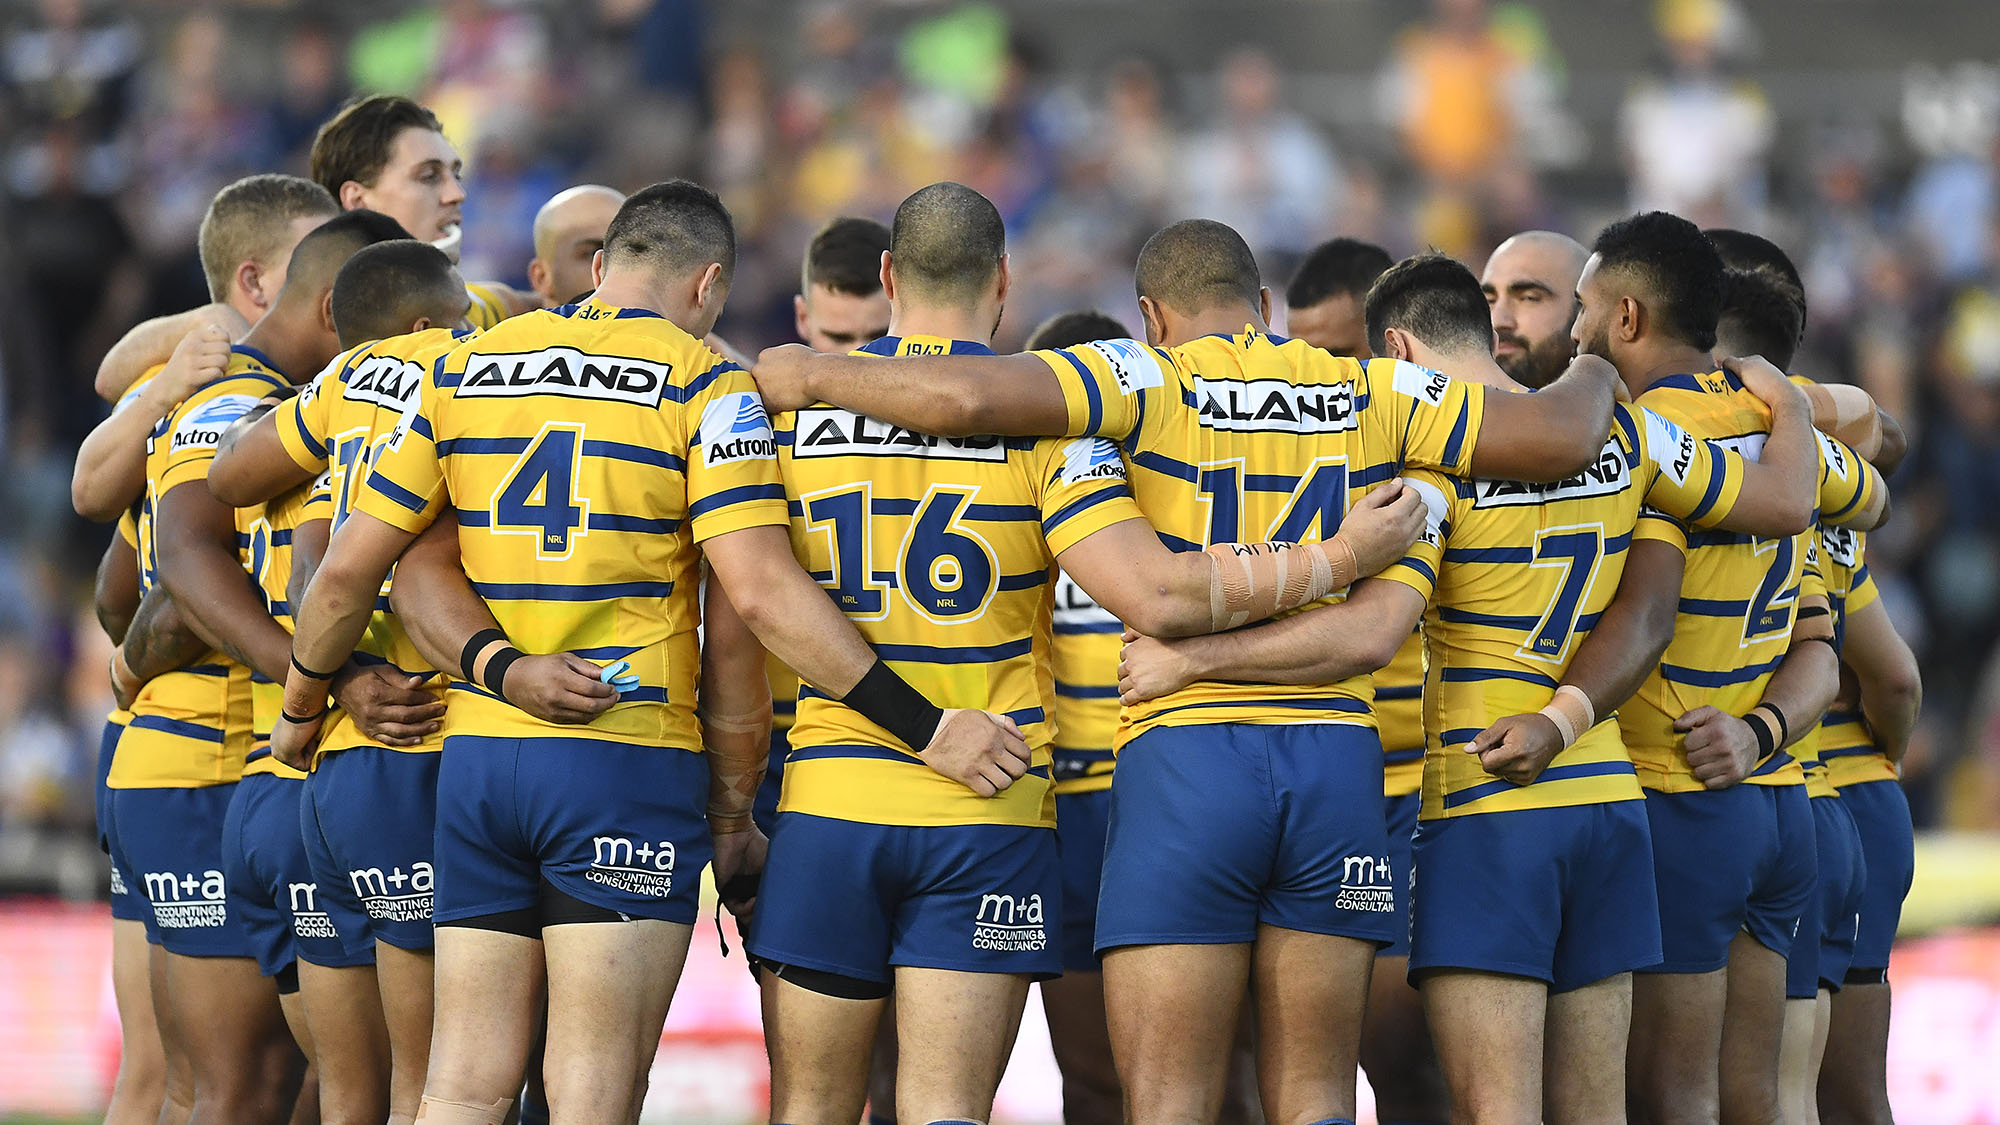 Nrl Stats 2020 The Numbers Behind Every Game This Weekend Sporting News Australia